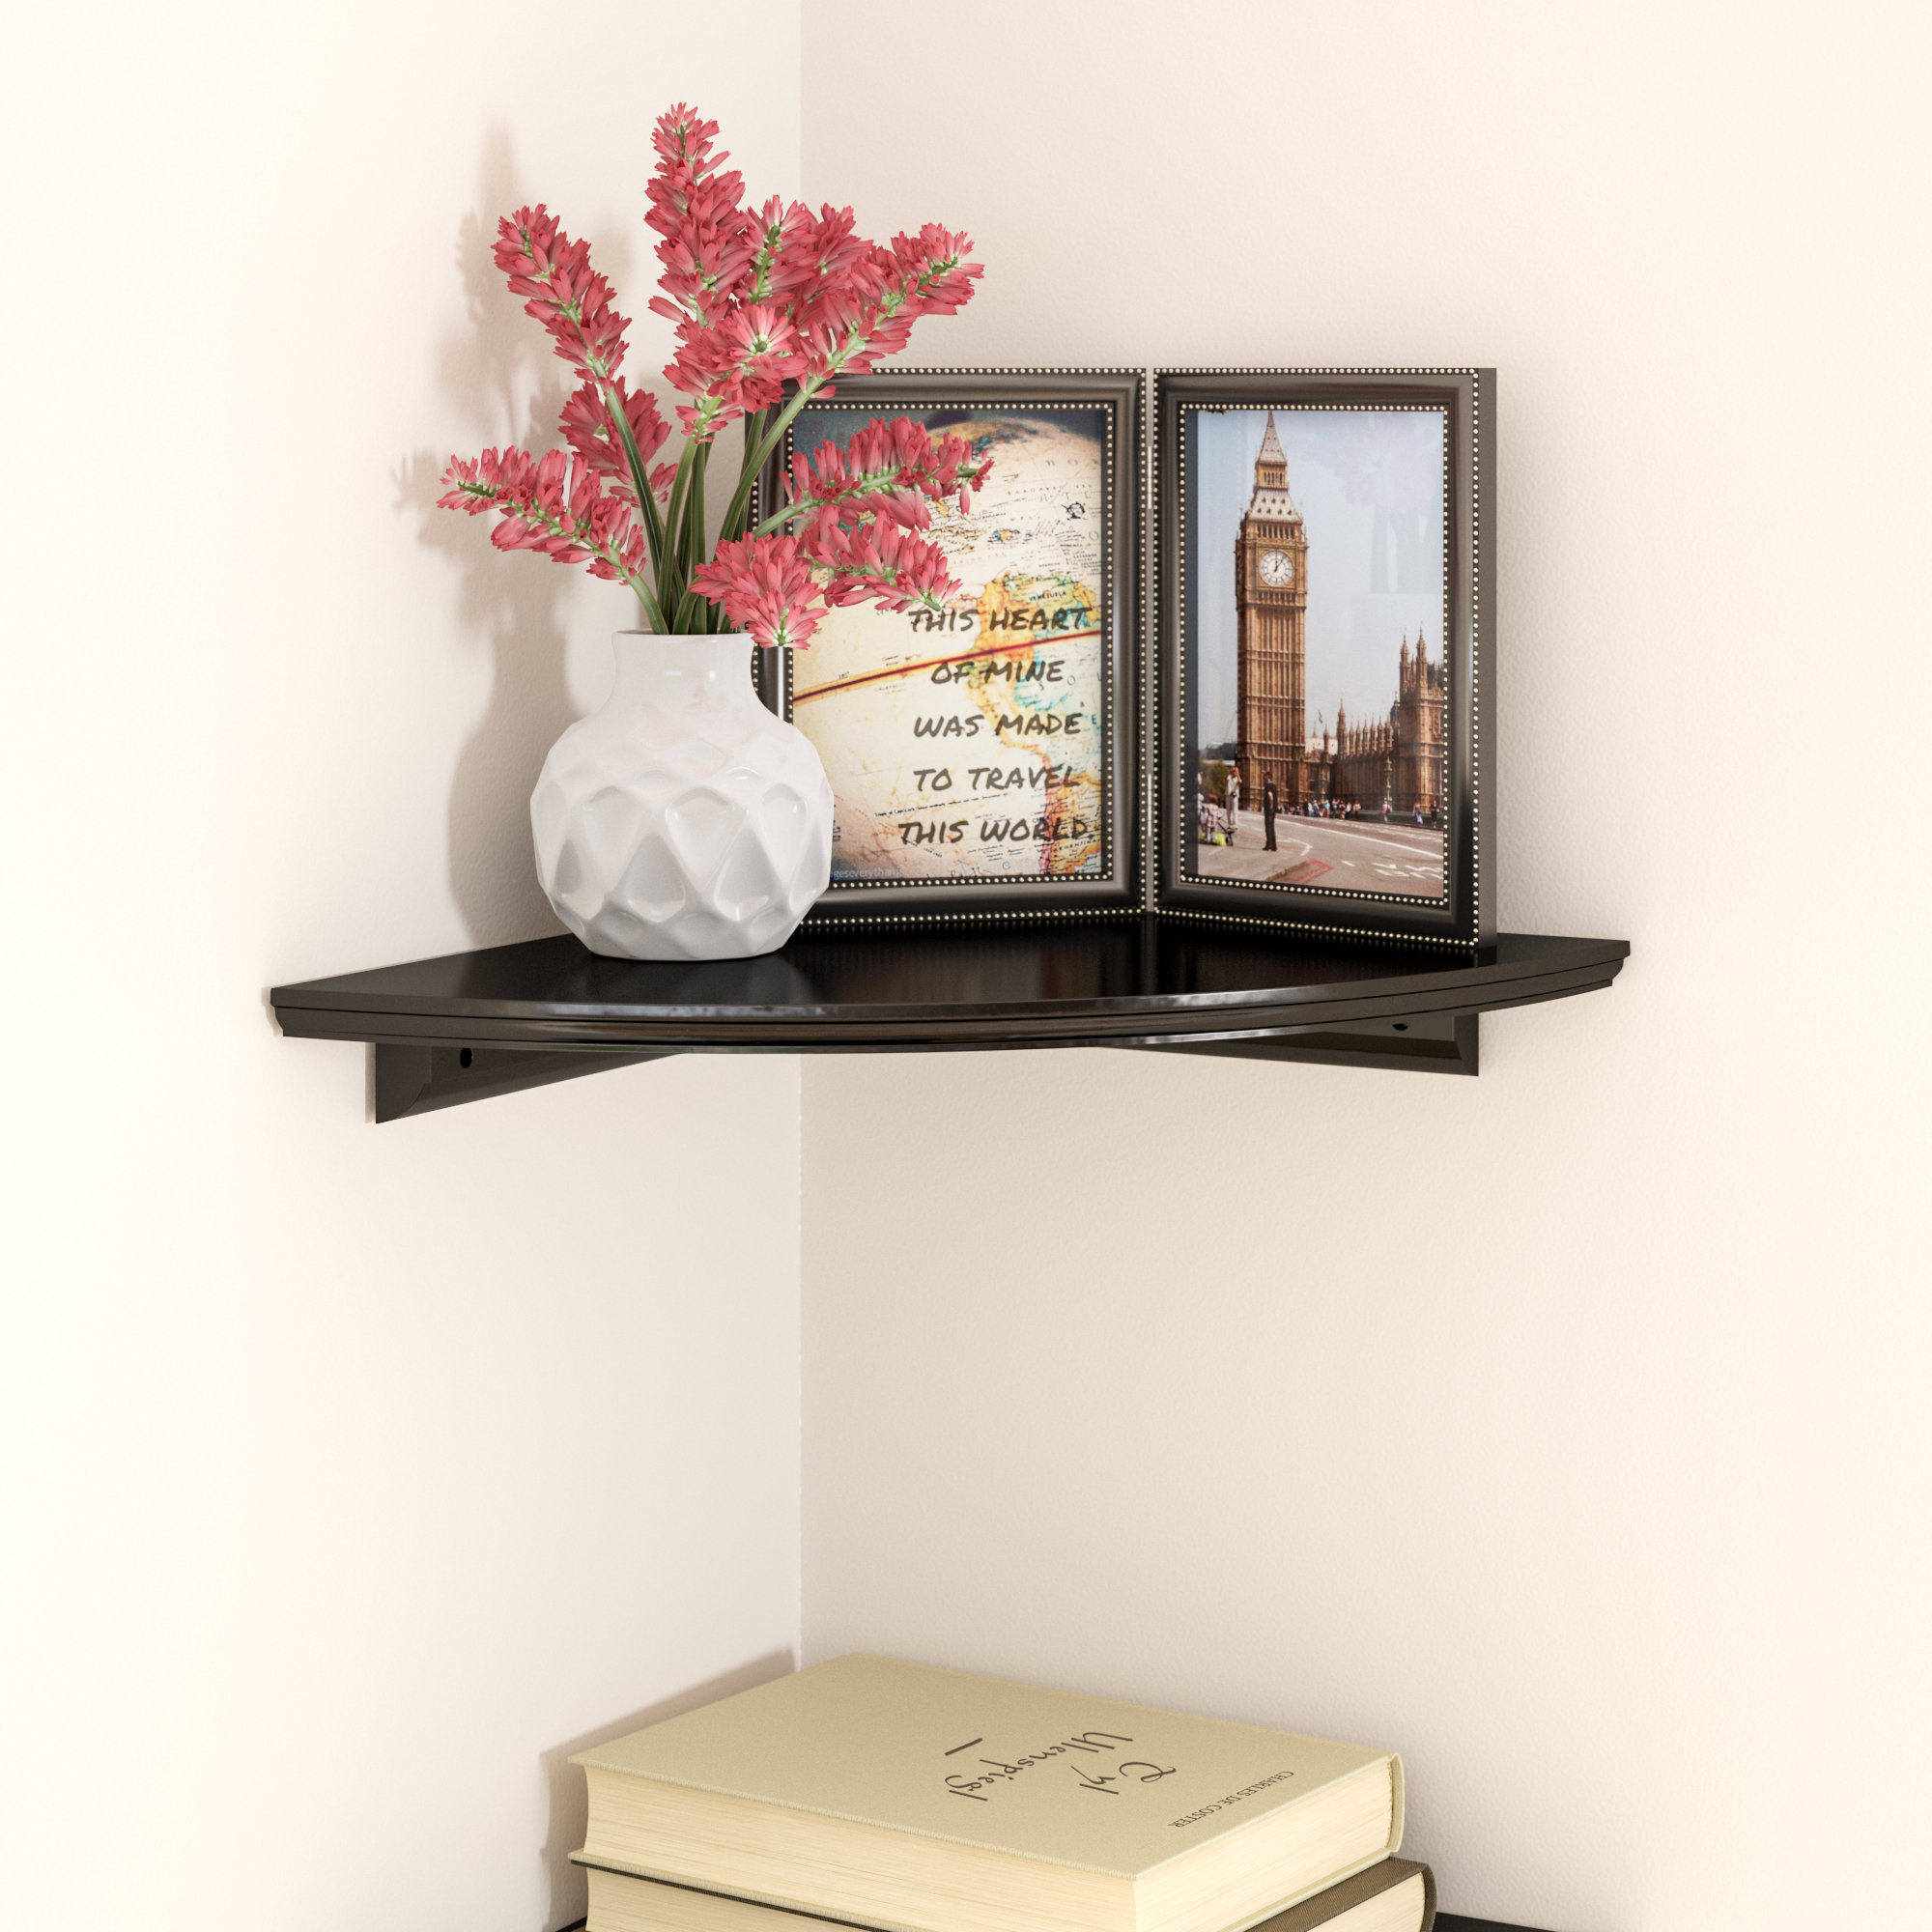 charlton home tremont floating corner shelf reviews chicago stud space cabinet ture hanging without drilling vonhaus mount building cleats open dish restoration hardware bookshelf